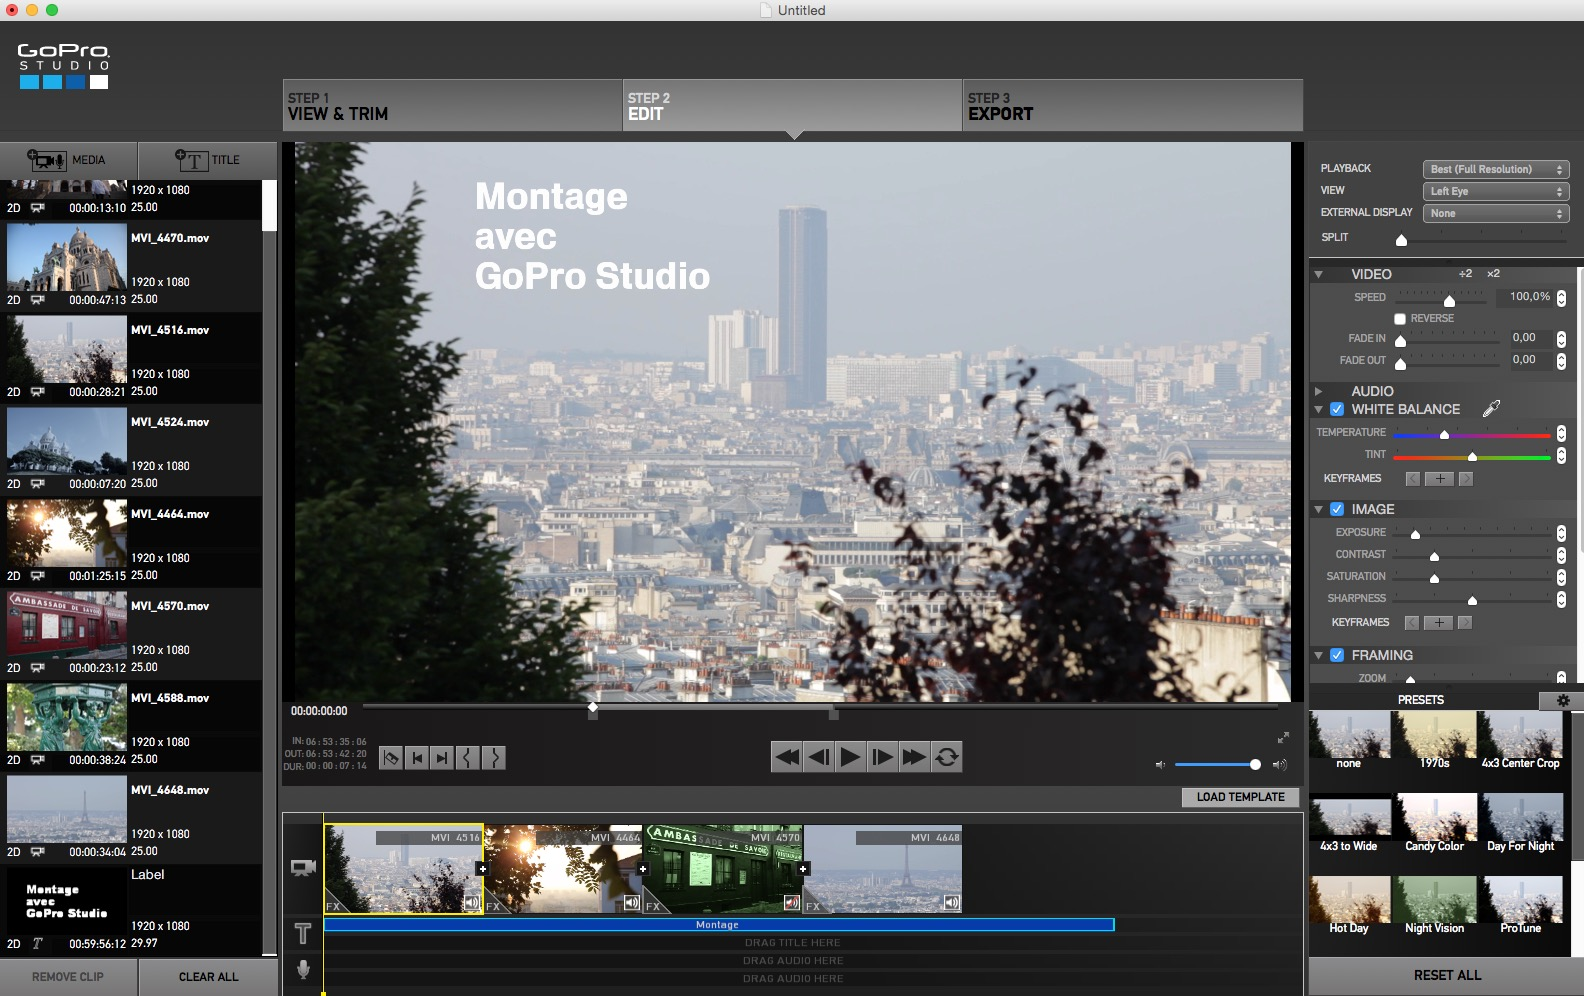 Montage Stand-Alone avec GoPro Studio